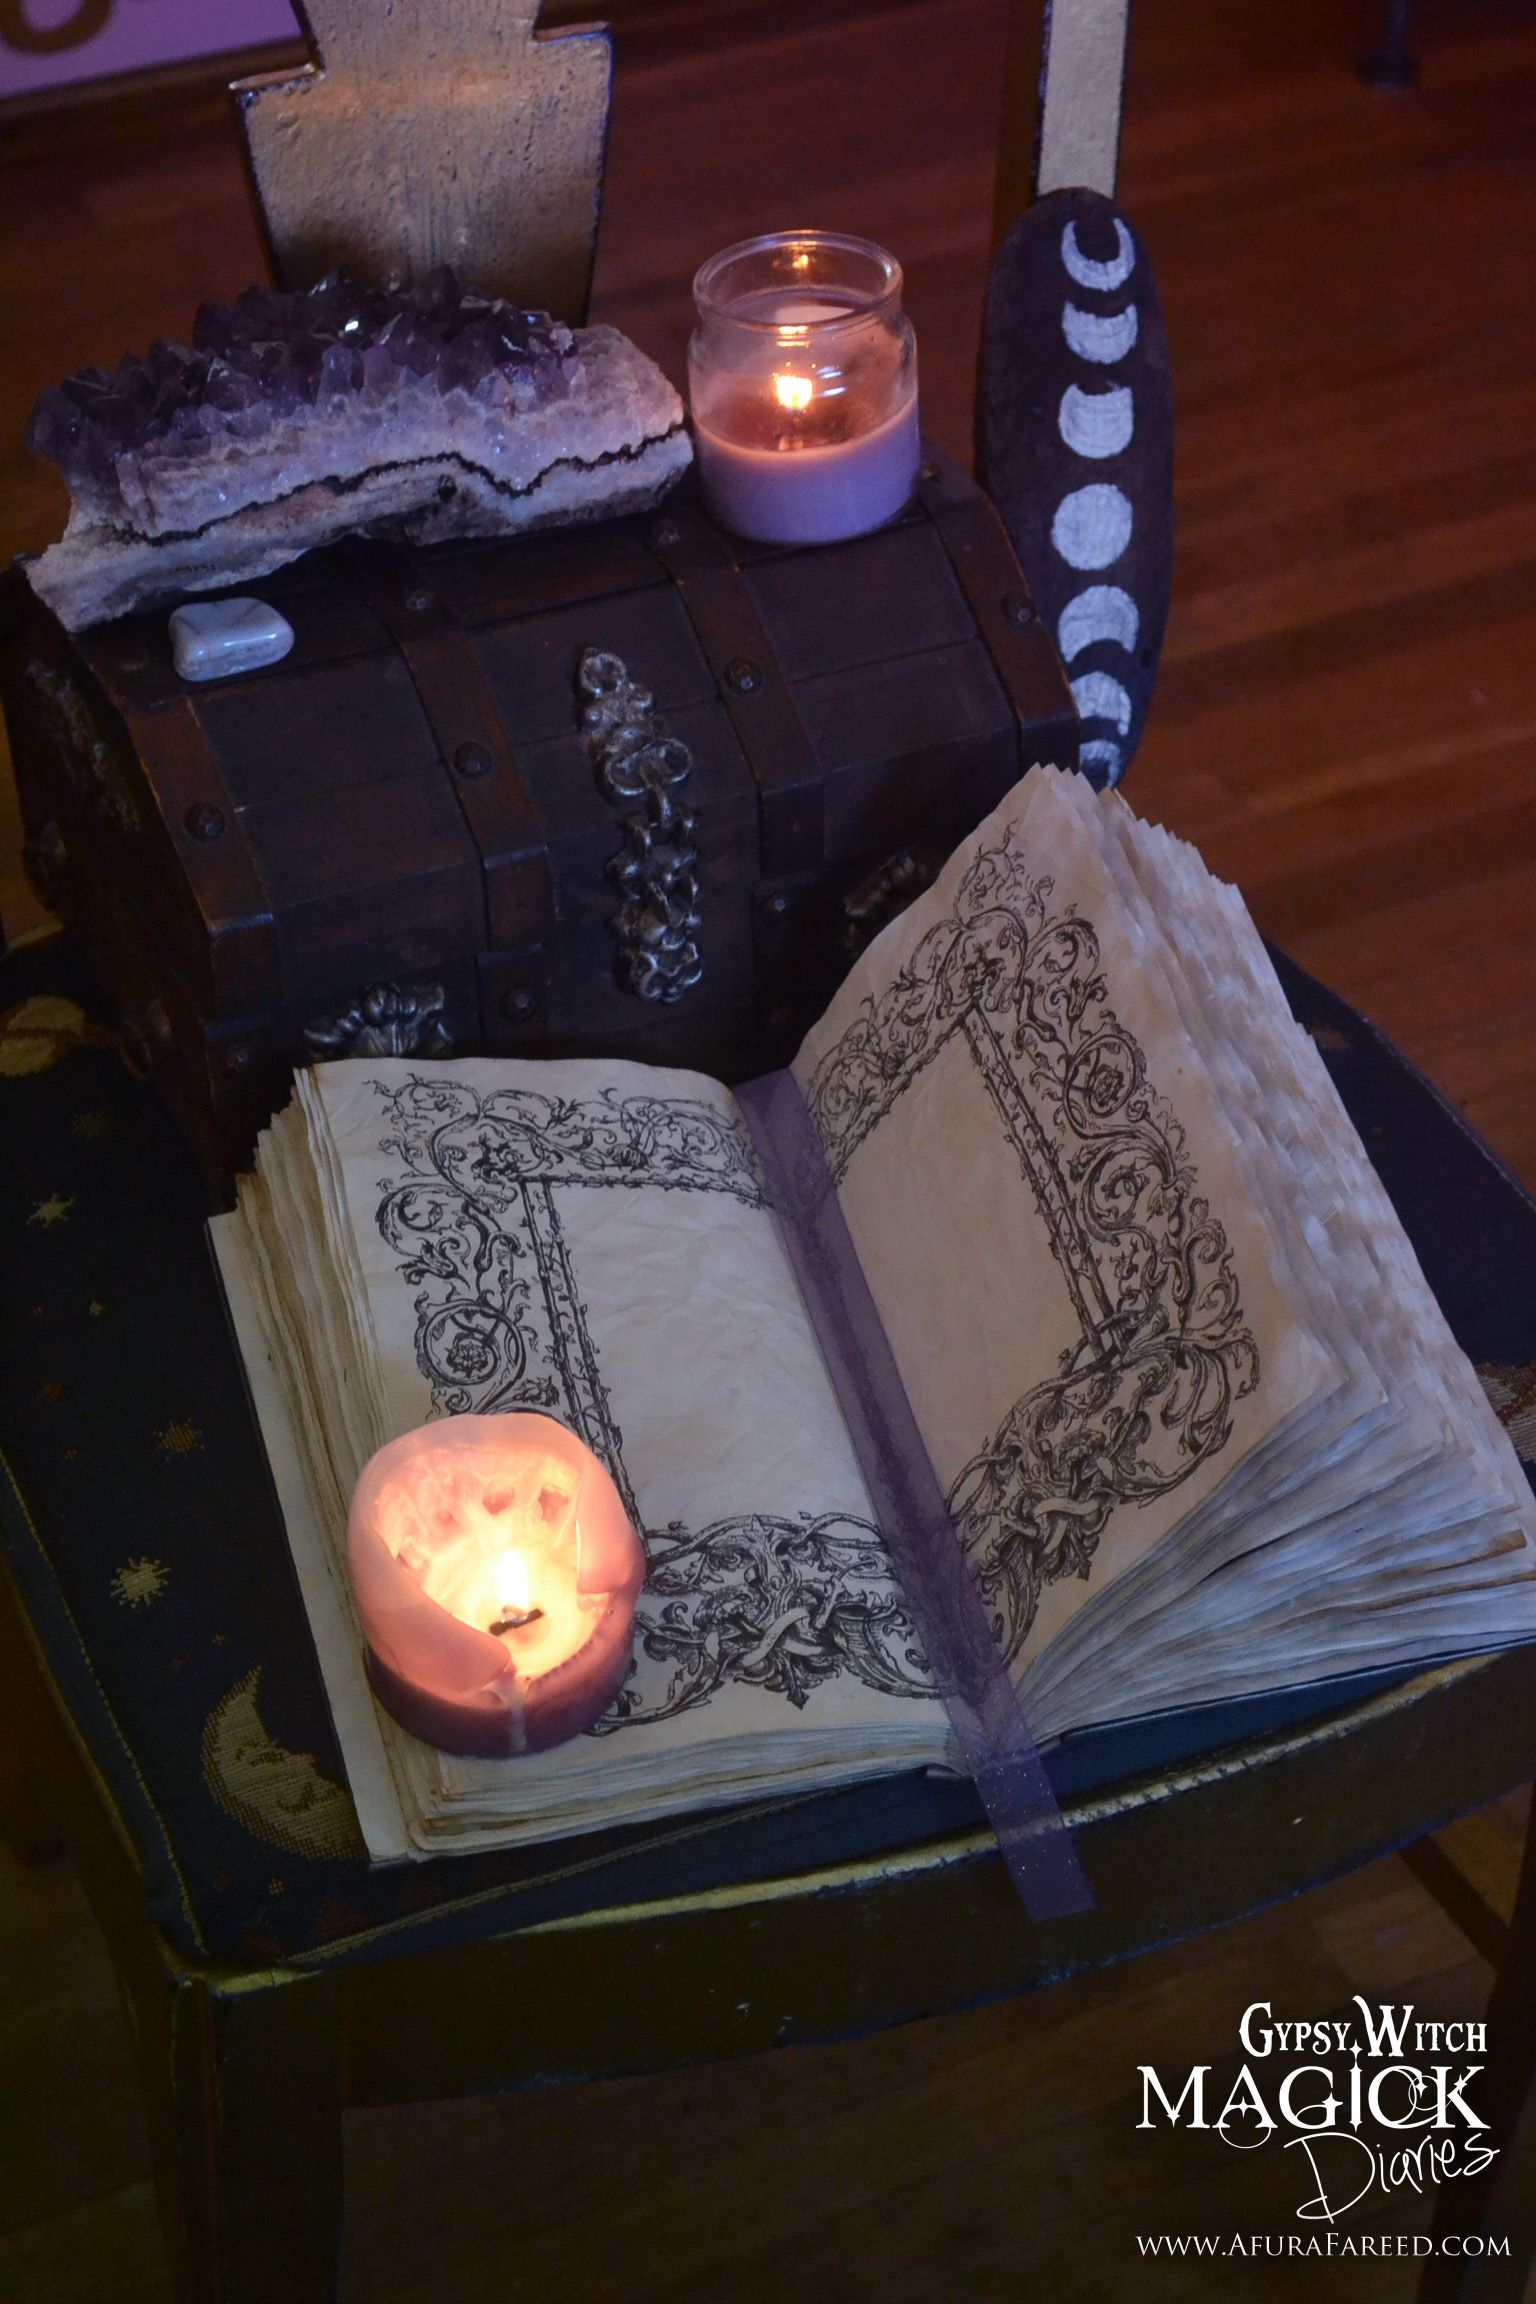 IN STOCK Full Moon Book of Shadows Witch's Spellbook